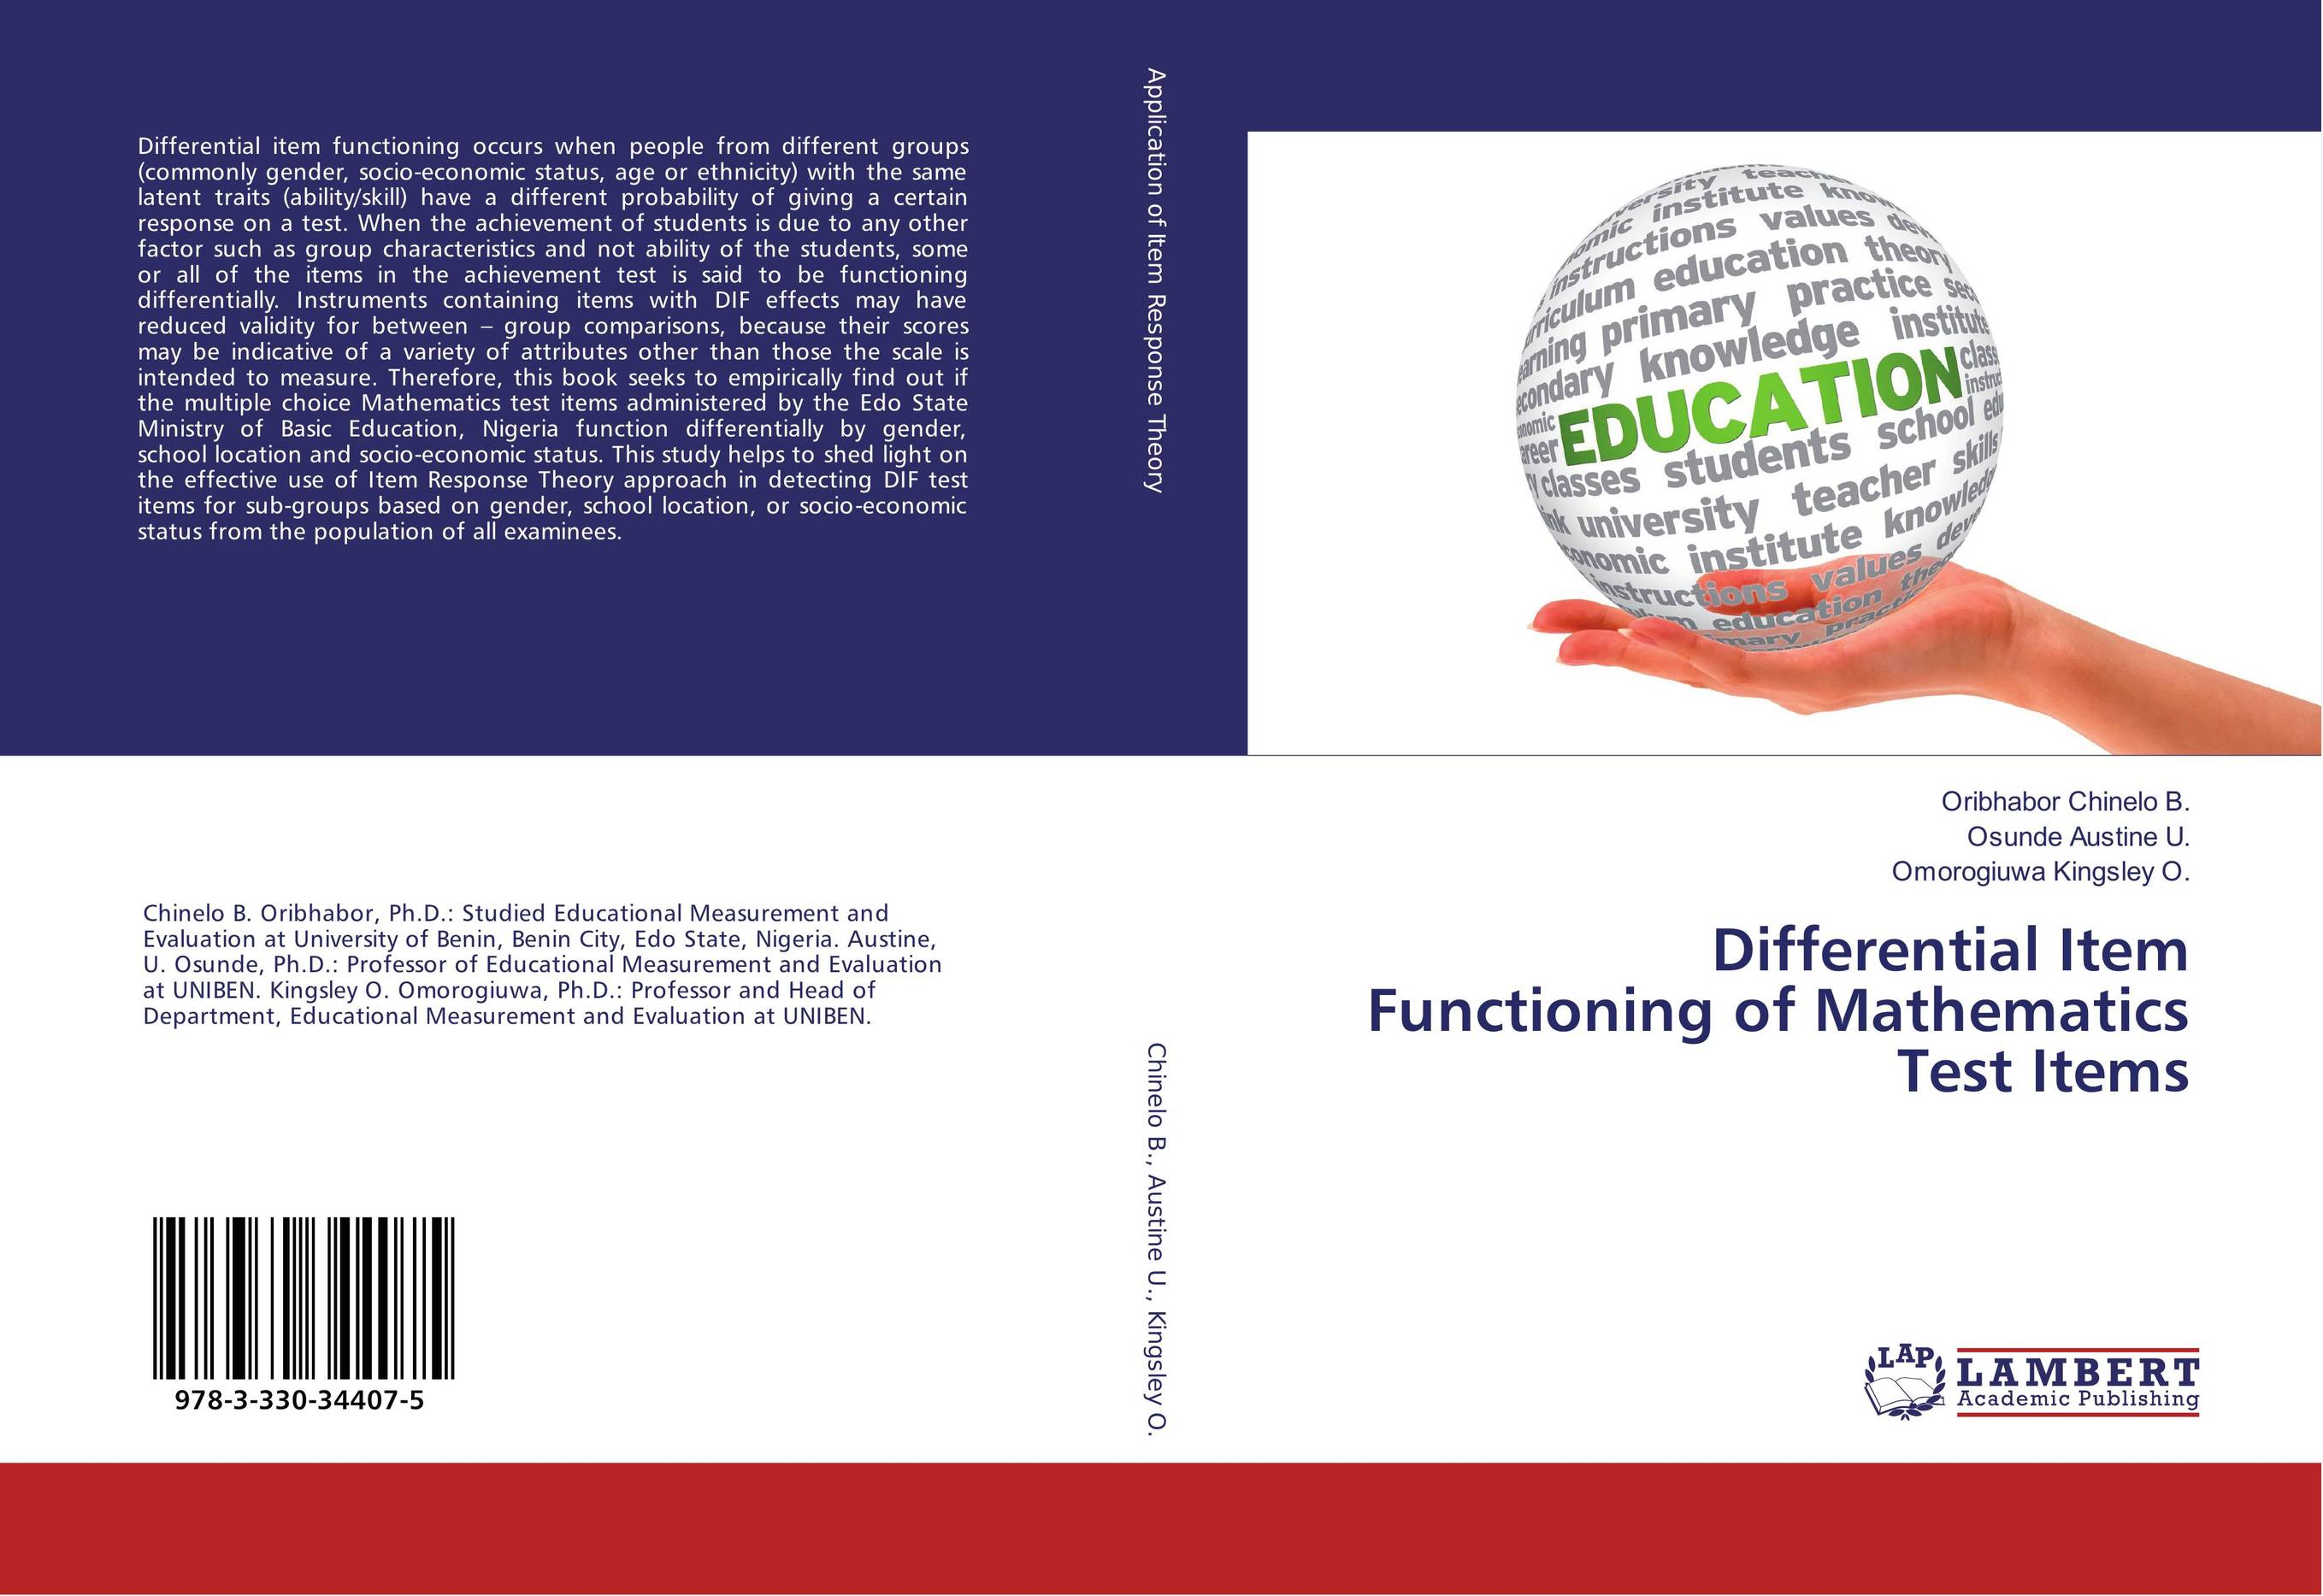 9783330344075 Differential Item Functioning of Mathematics Test Items Oribhabo